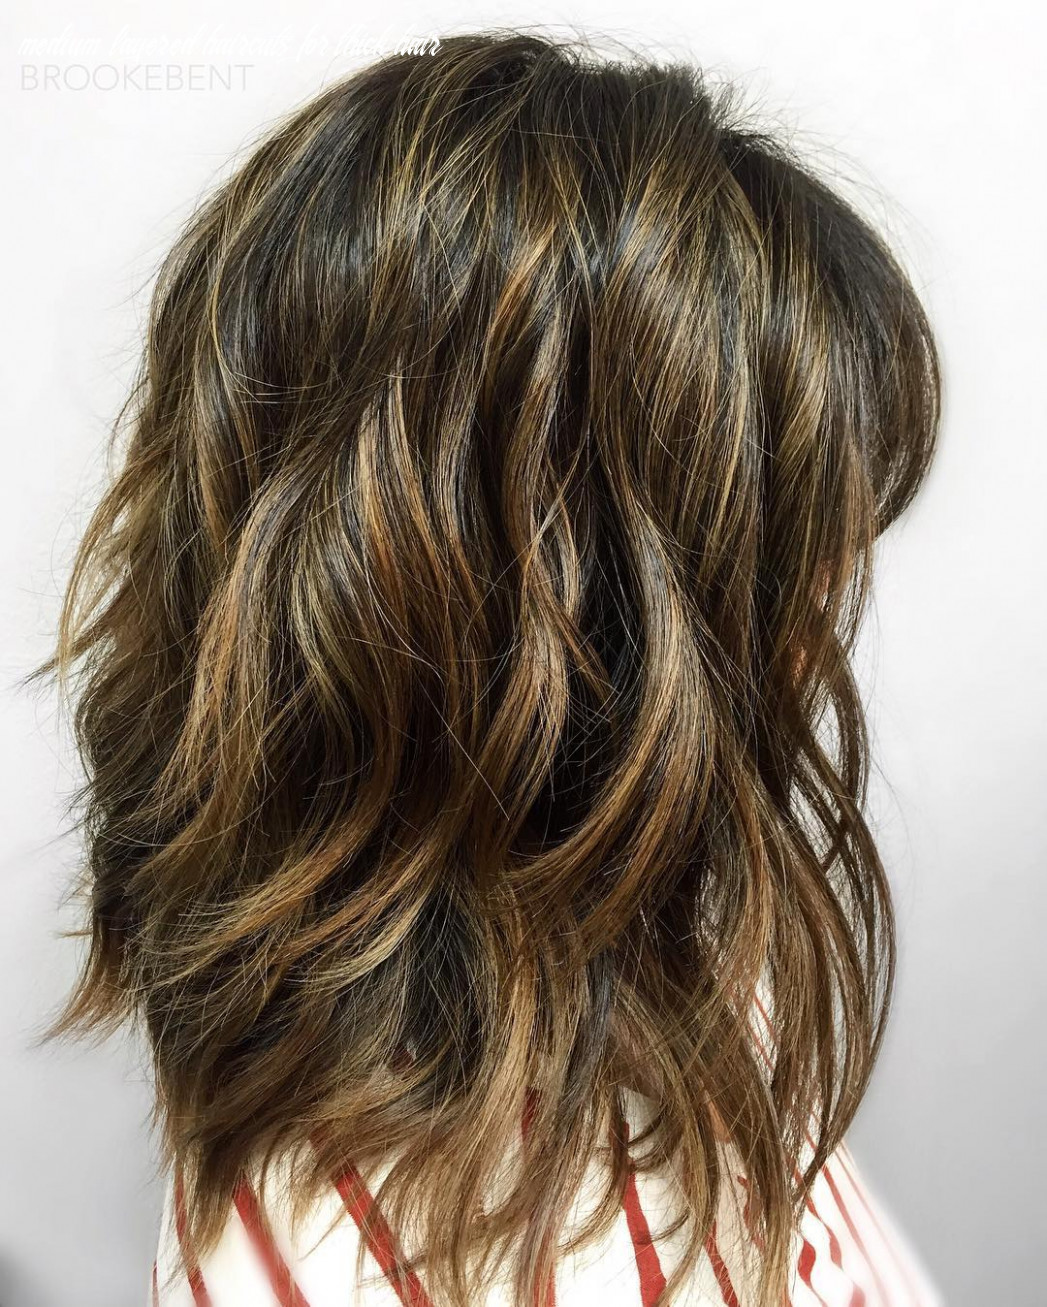 Layered Hairstyles Shoulder Length Thick Hair